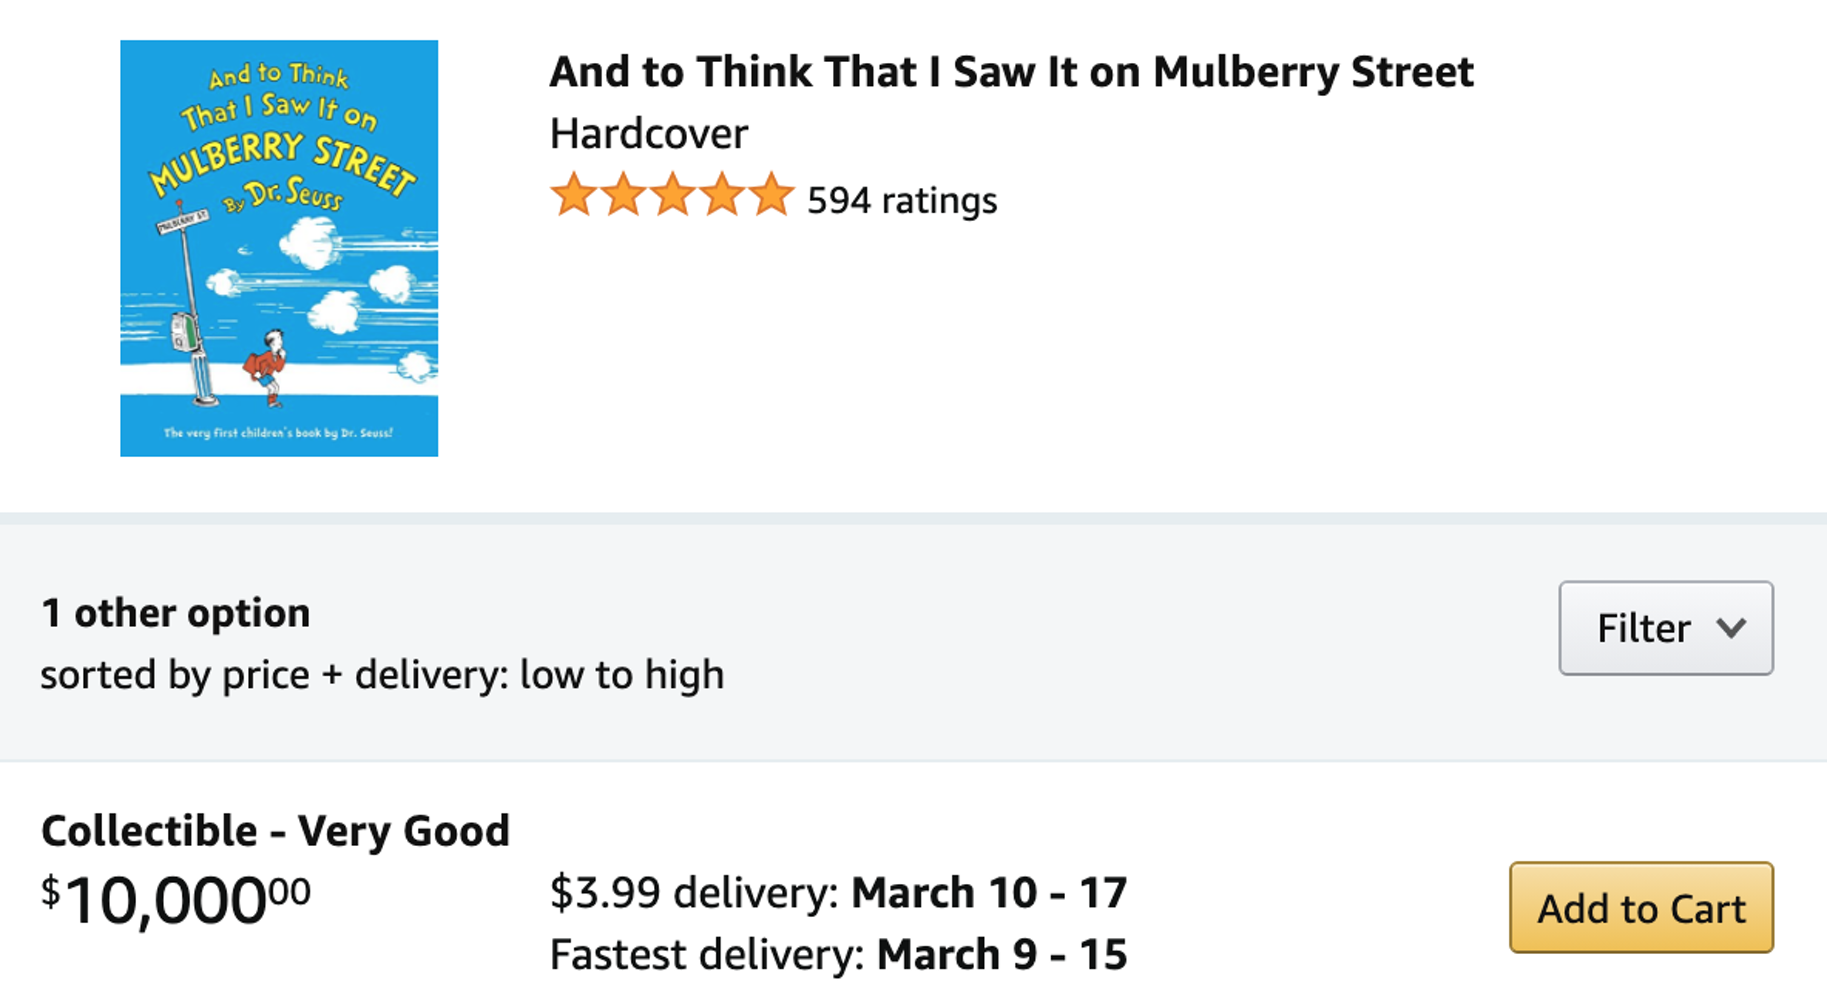 Screencap of an Amazon listing for And to Think That I Saw It on Mulberry Street for sale for $10,000